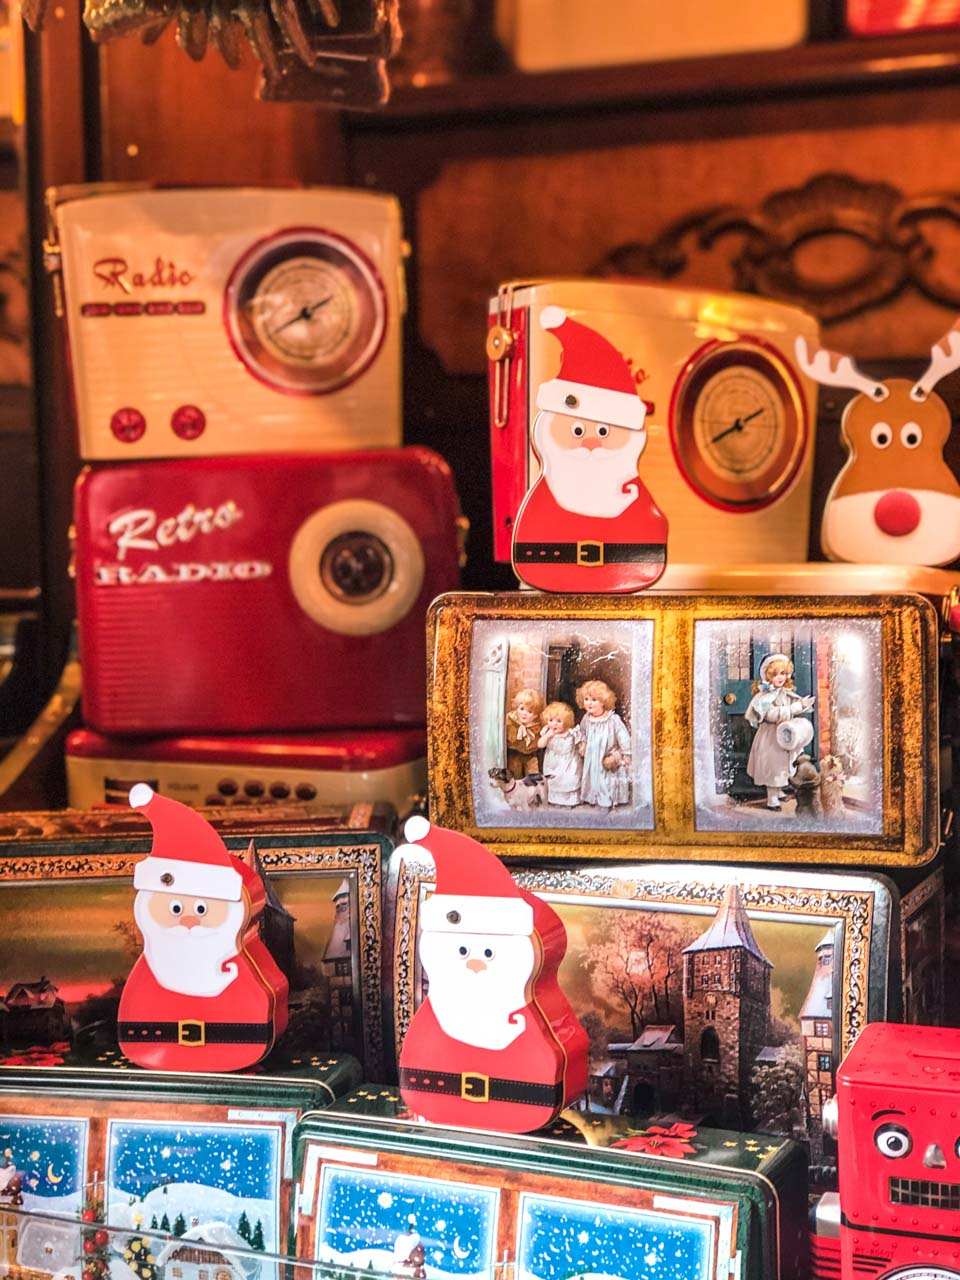 Decorative Christmas cans at the City Hall Christmas Market in Hamburg